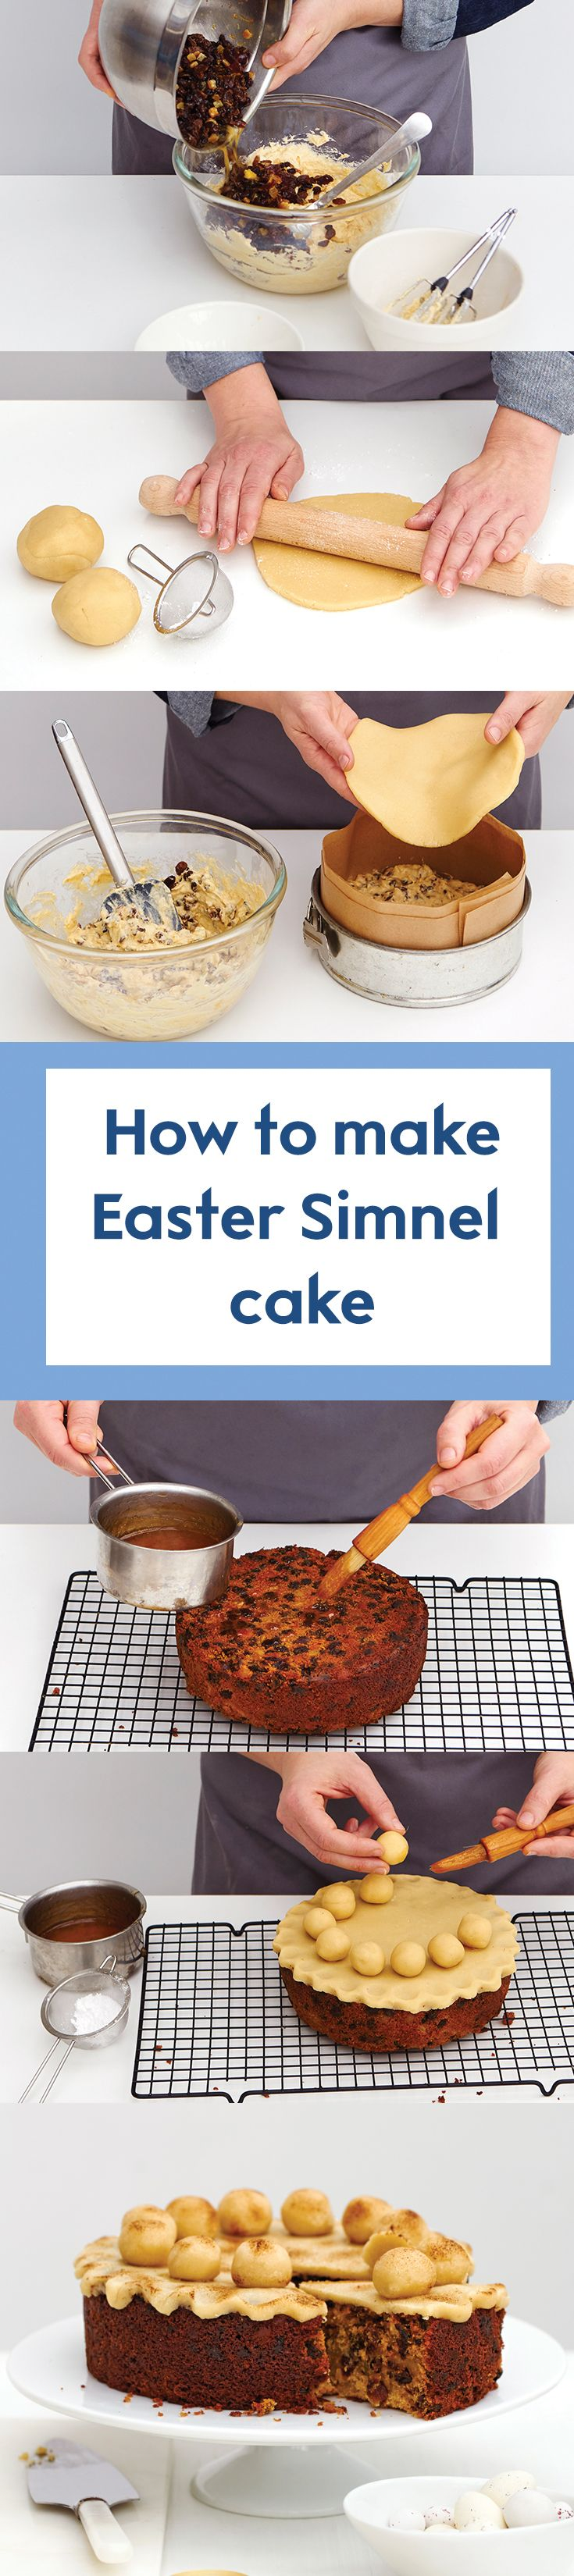 Discover our recipe and top tips to creating the perfect Simnel cake this Easter. We recommend making your own marzipan to make it even more special. Find the recipe on the Waitrose website.